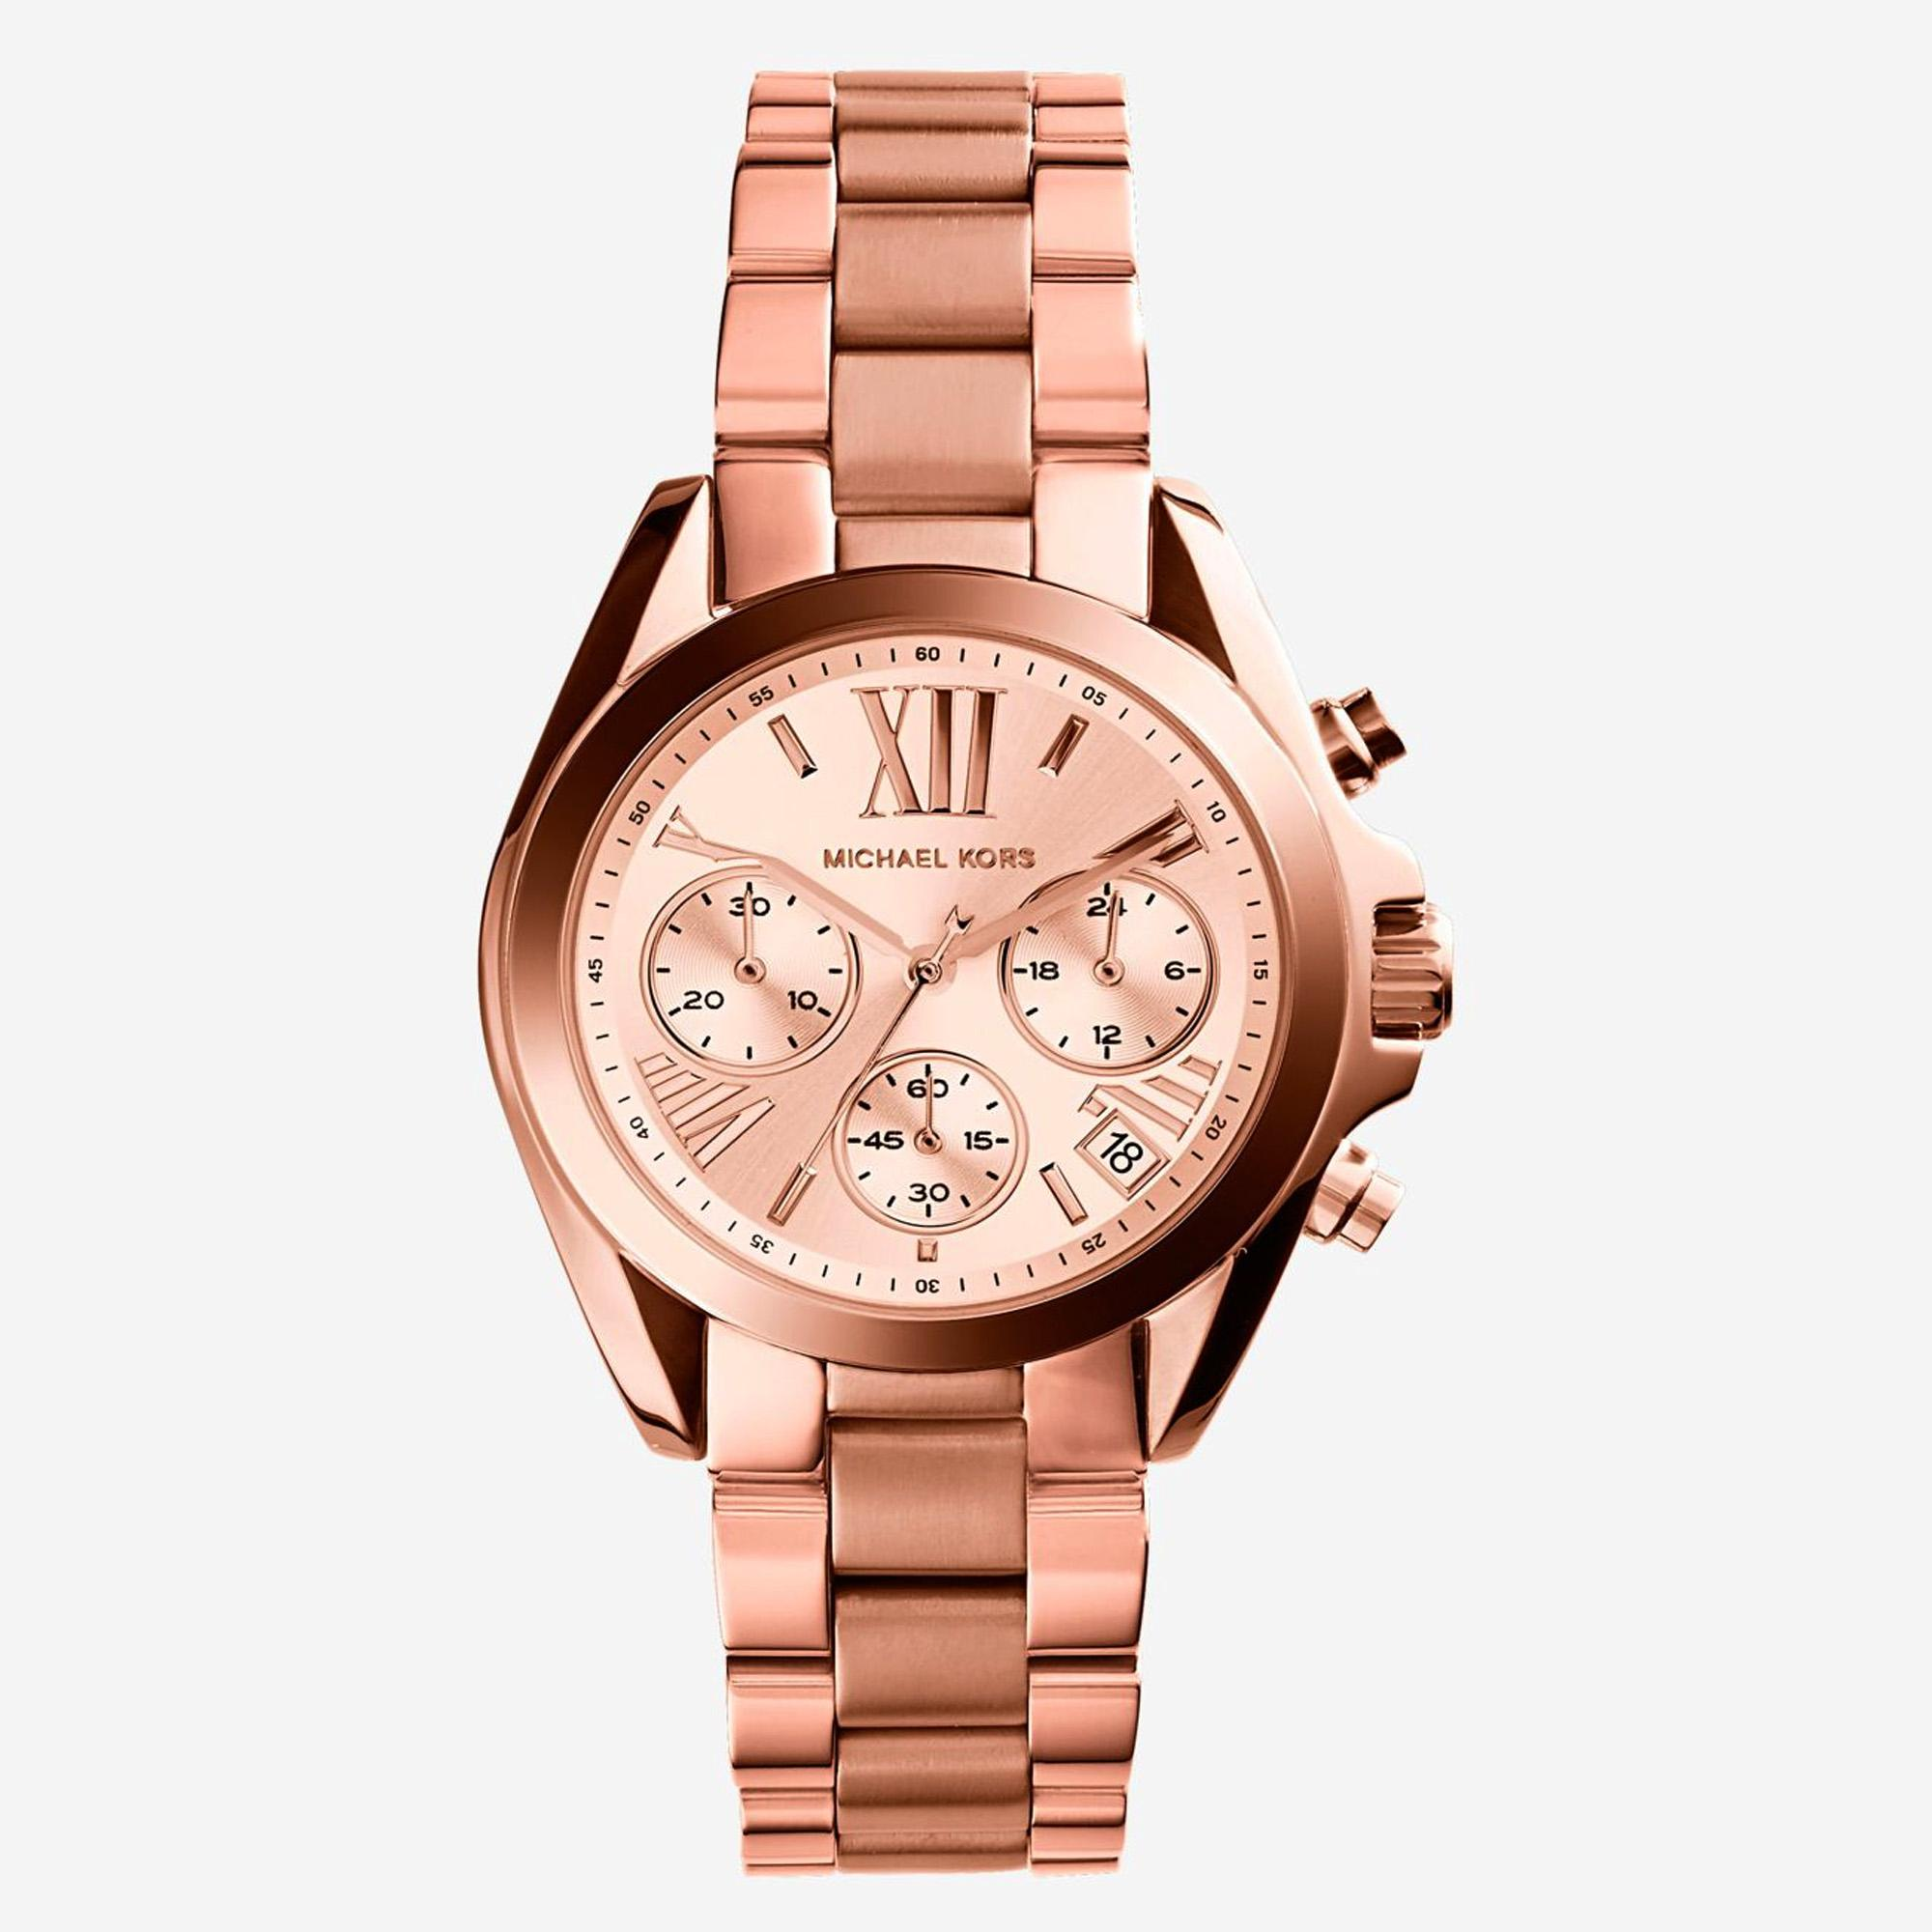 e3f4220df82e Michael Kors Philippines: Michael Kors price list - Michael Kors ...